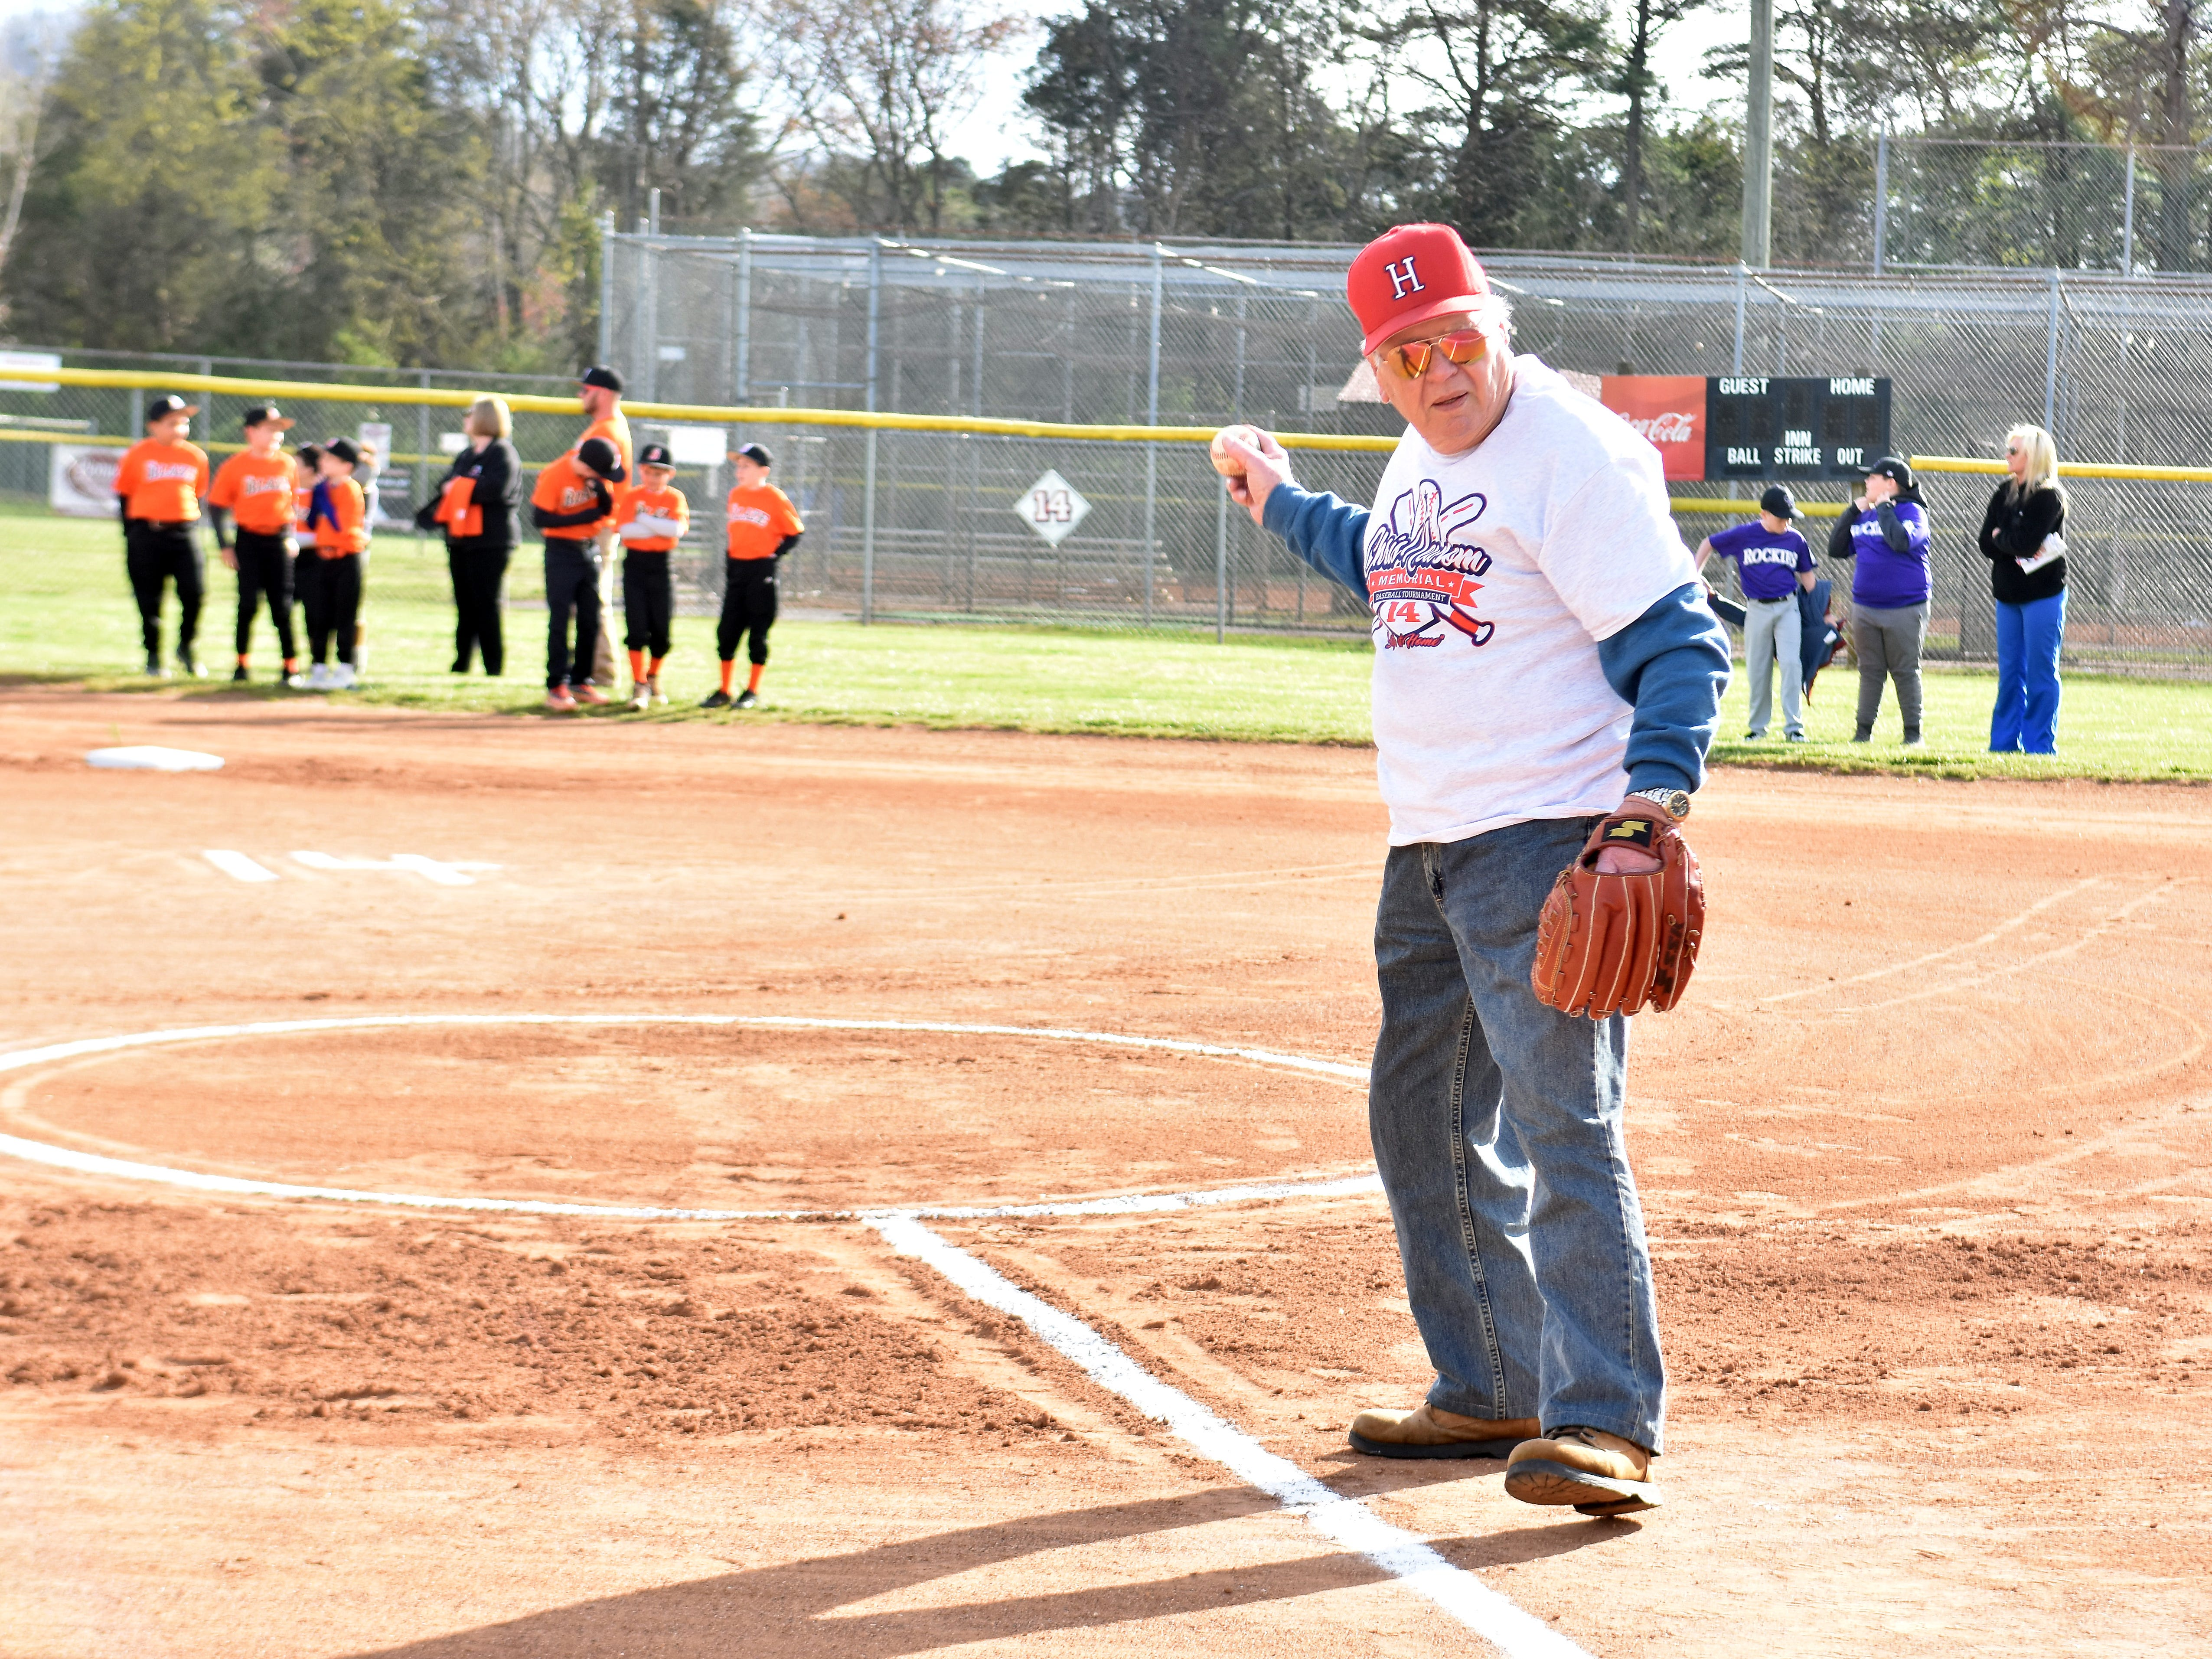 As teams begin to arrive at Halls Community Park on Monday, April 1, Hugh Newsom warms up his arm in anticipation of throwing out the first pitch of the 12th annual Chris Newsom Memorial Tournament.